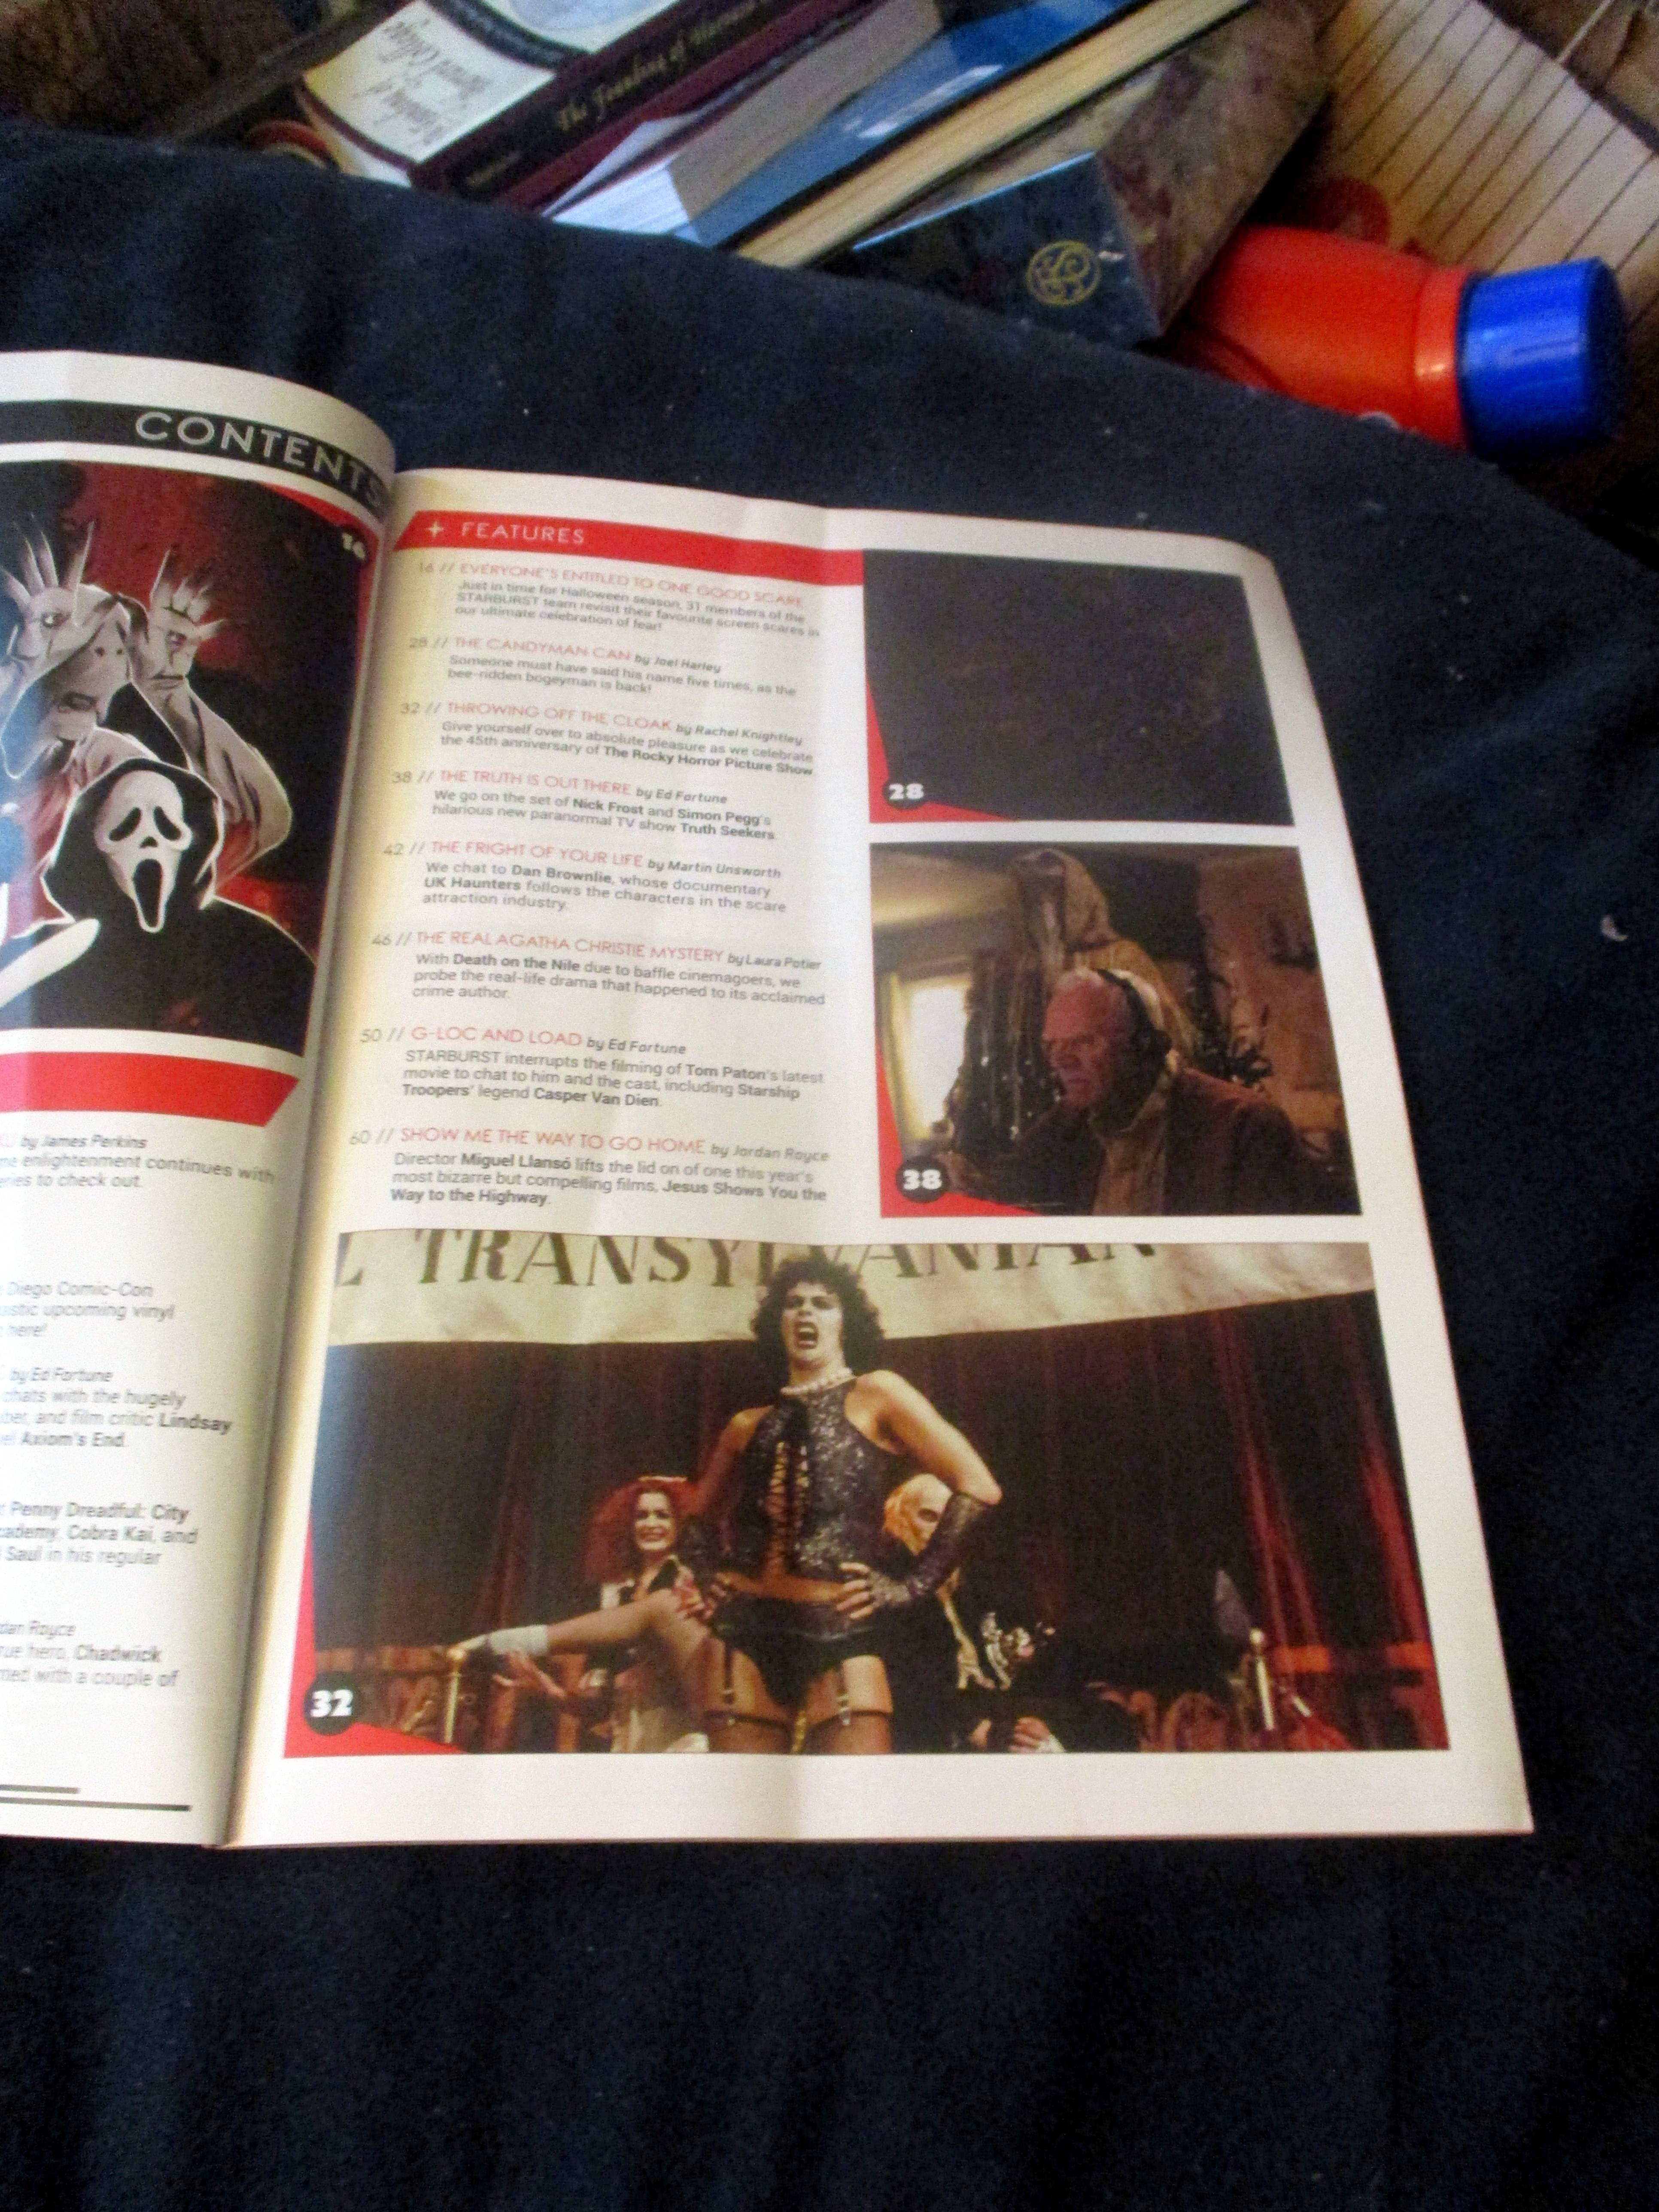 Page with Table of Contents in Starburst Magazine #474: Everyone's Entitled to One Good Scare Collectors' Edition at The Wombatorium 2.0: A Capital Idea